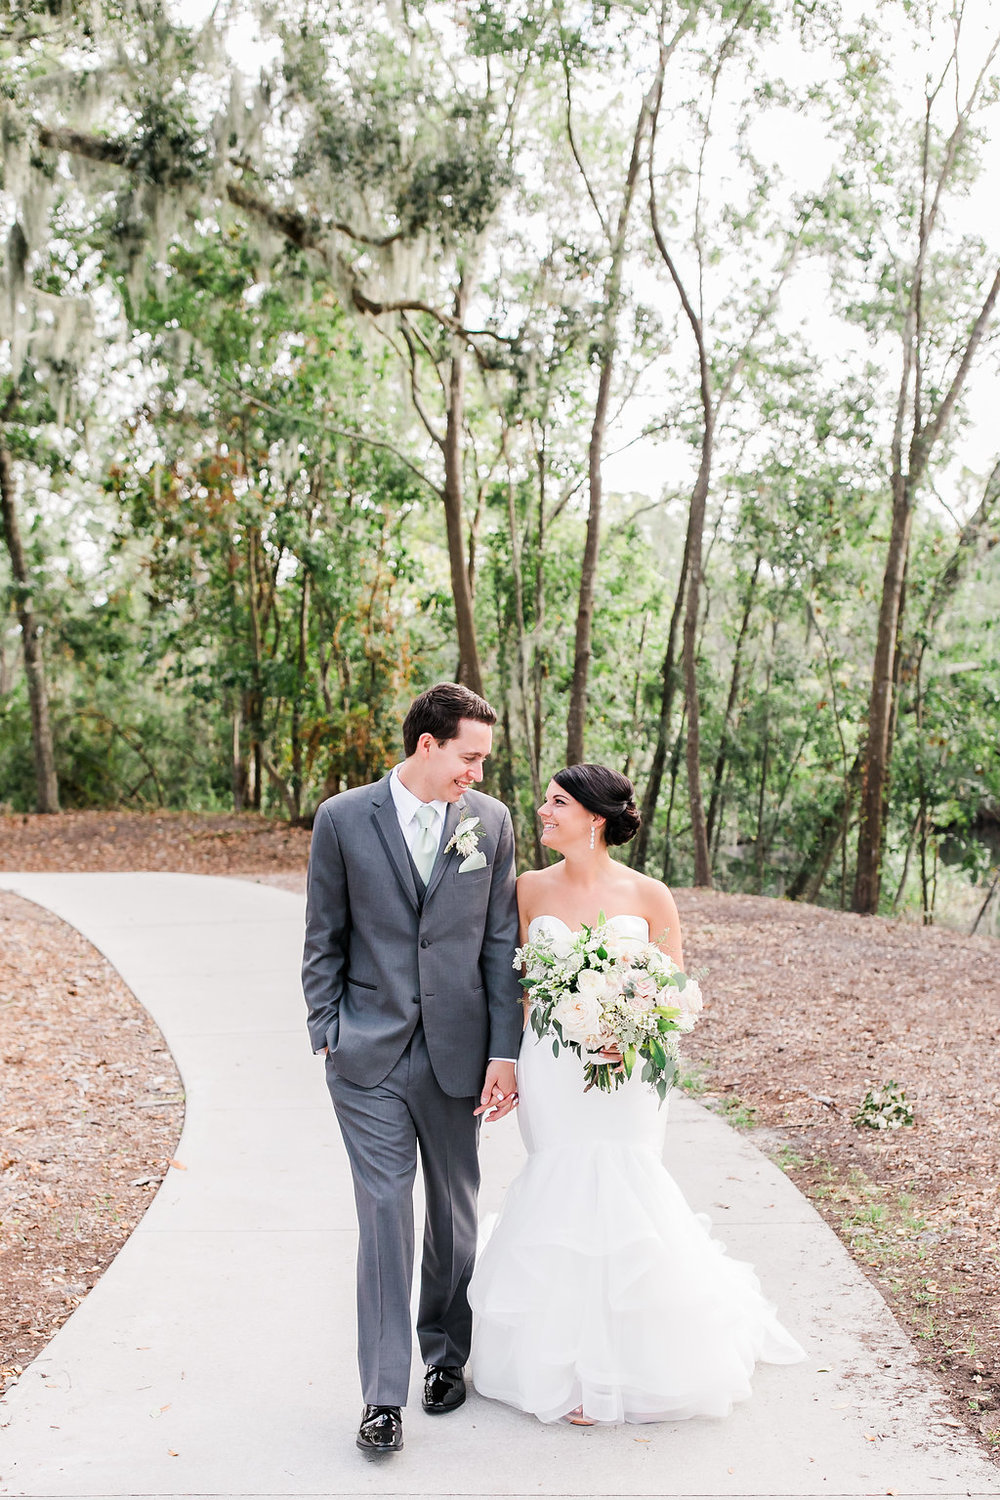 ivory-and-beau-bridal-boutique-jb-marie-photography-hannah-and-daniel-westin-hilton-head-island-wedding-hilton-head-island-florist-13.jpg